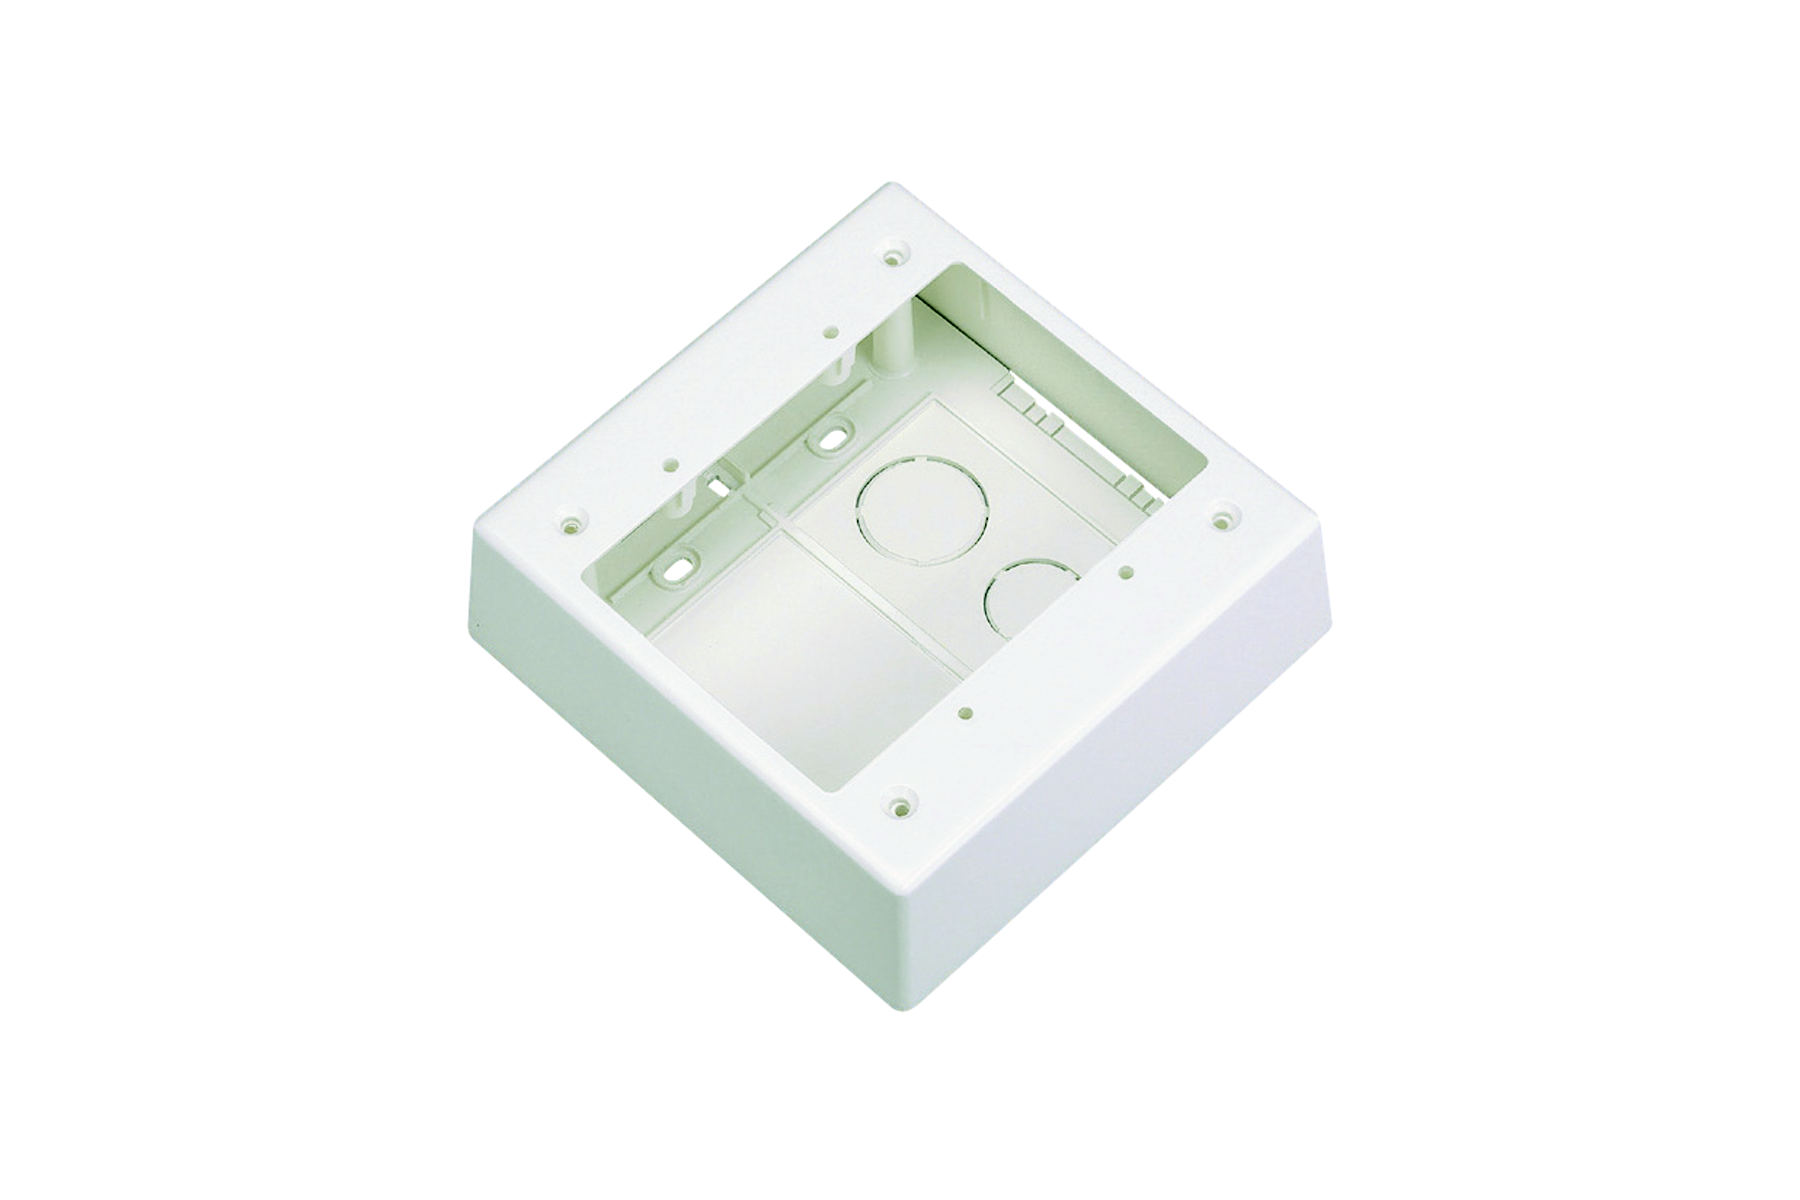 """Mayer-Double gang two-piece screw together outlet box. Box accepts Pan-Way® Screw-On Faceplates or any NEMA standard double gang faceplates. For use with Pan-Way® LD profile raceway. 5.05""""L x 5.05""""W x 1.62""""H (128.2mm x 128.2mm x 41.1mm). Breakouts for 1/2"""" or 3/4"""" diameter conduit.-1"""